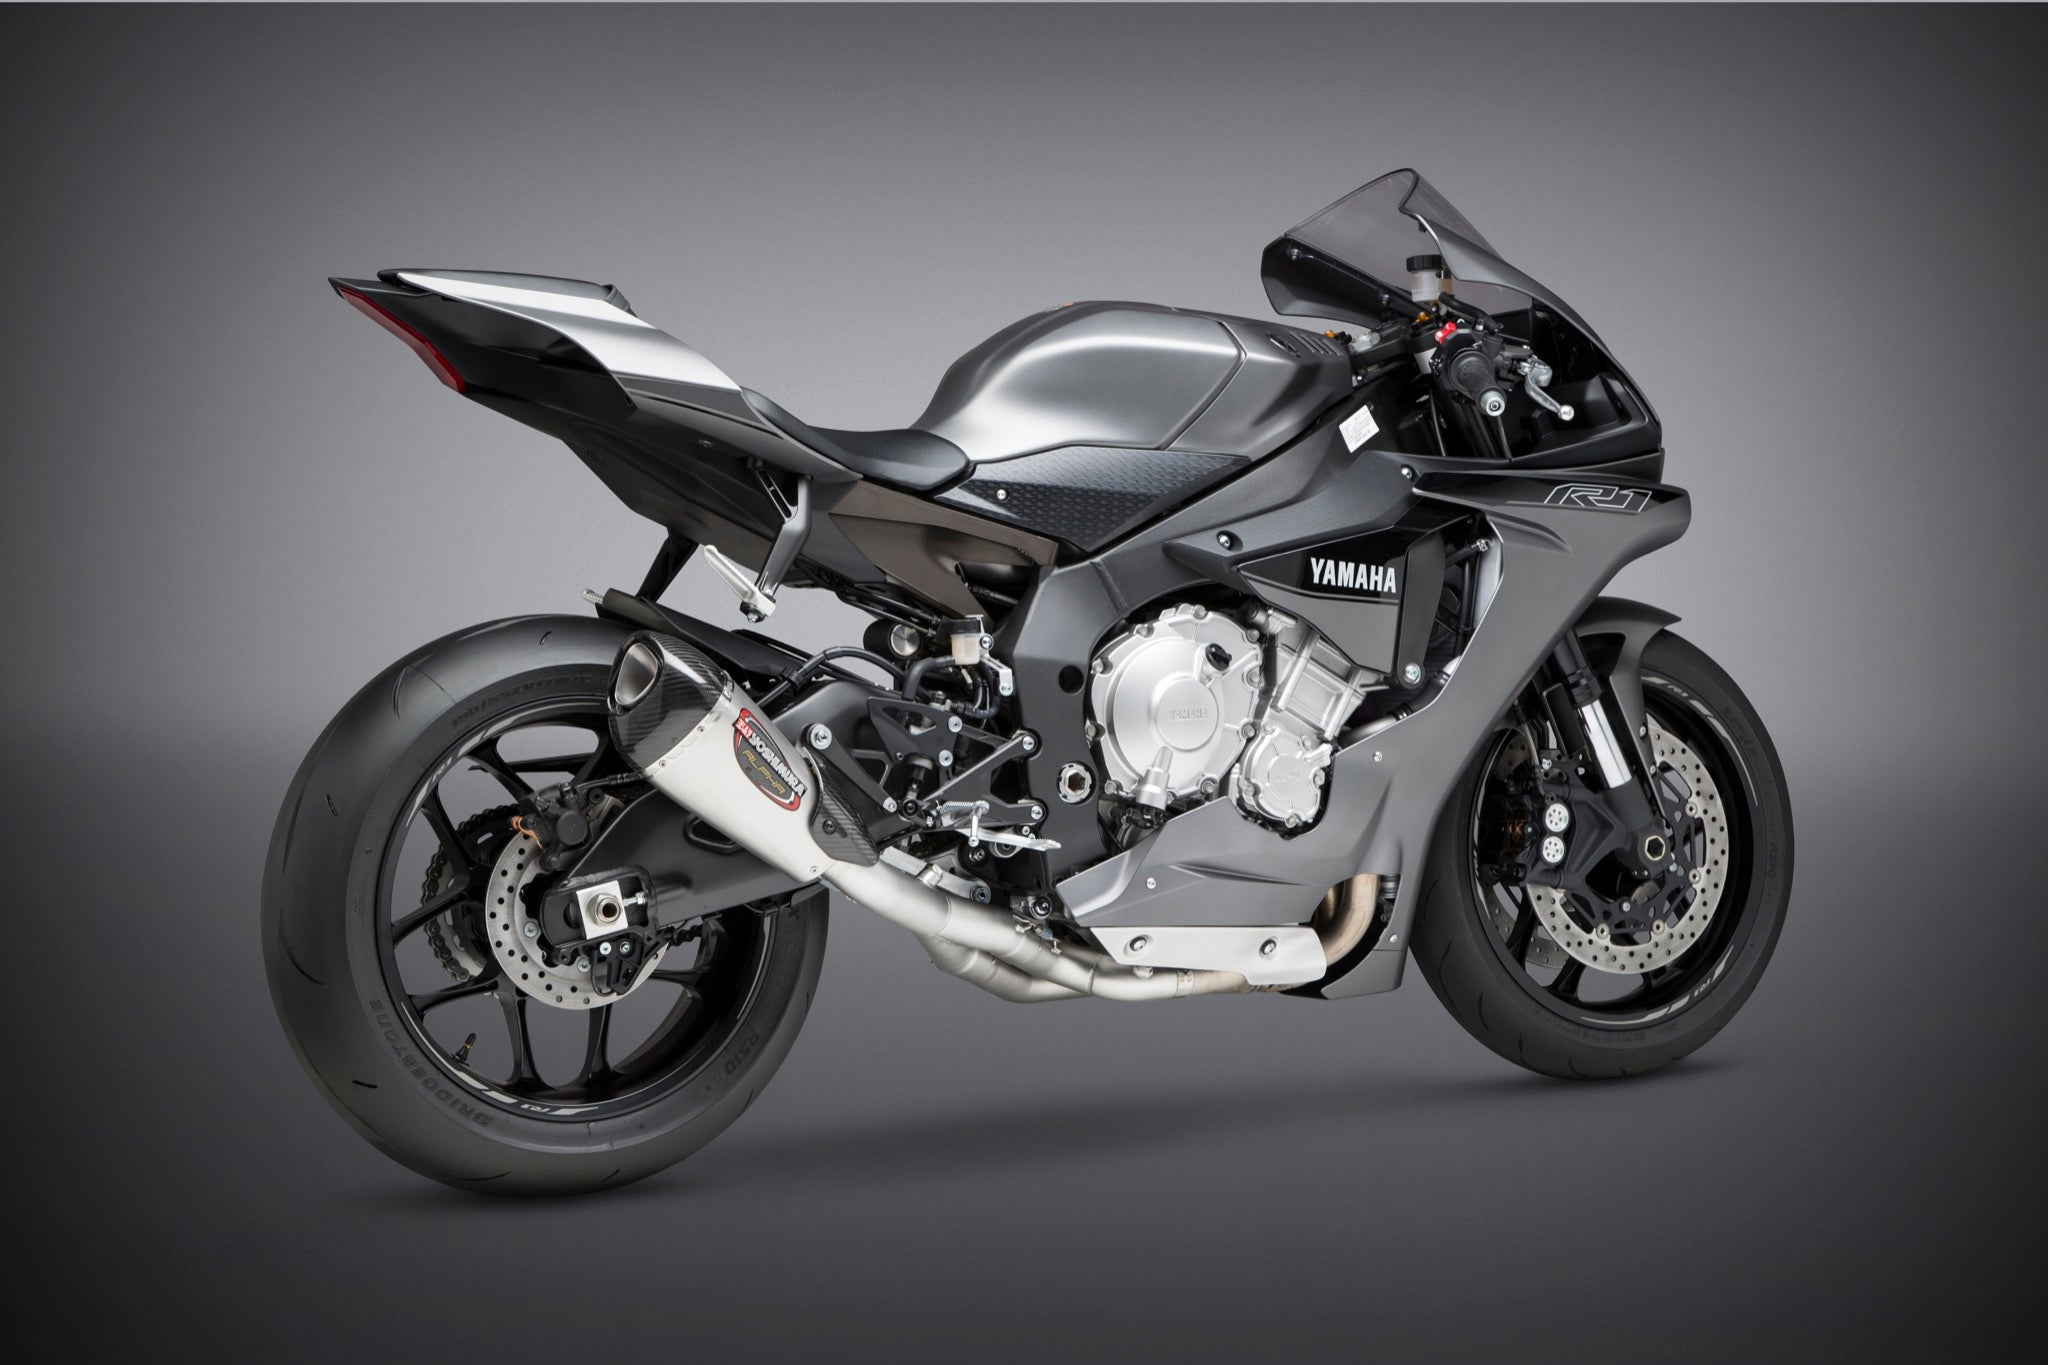 Yoshimura Yzf R1 M S 2015 19 Alpha T 3 4 Stainless Exhaust Stainless